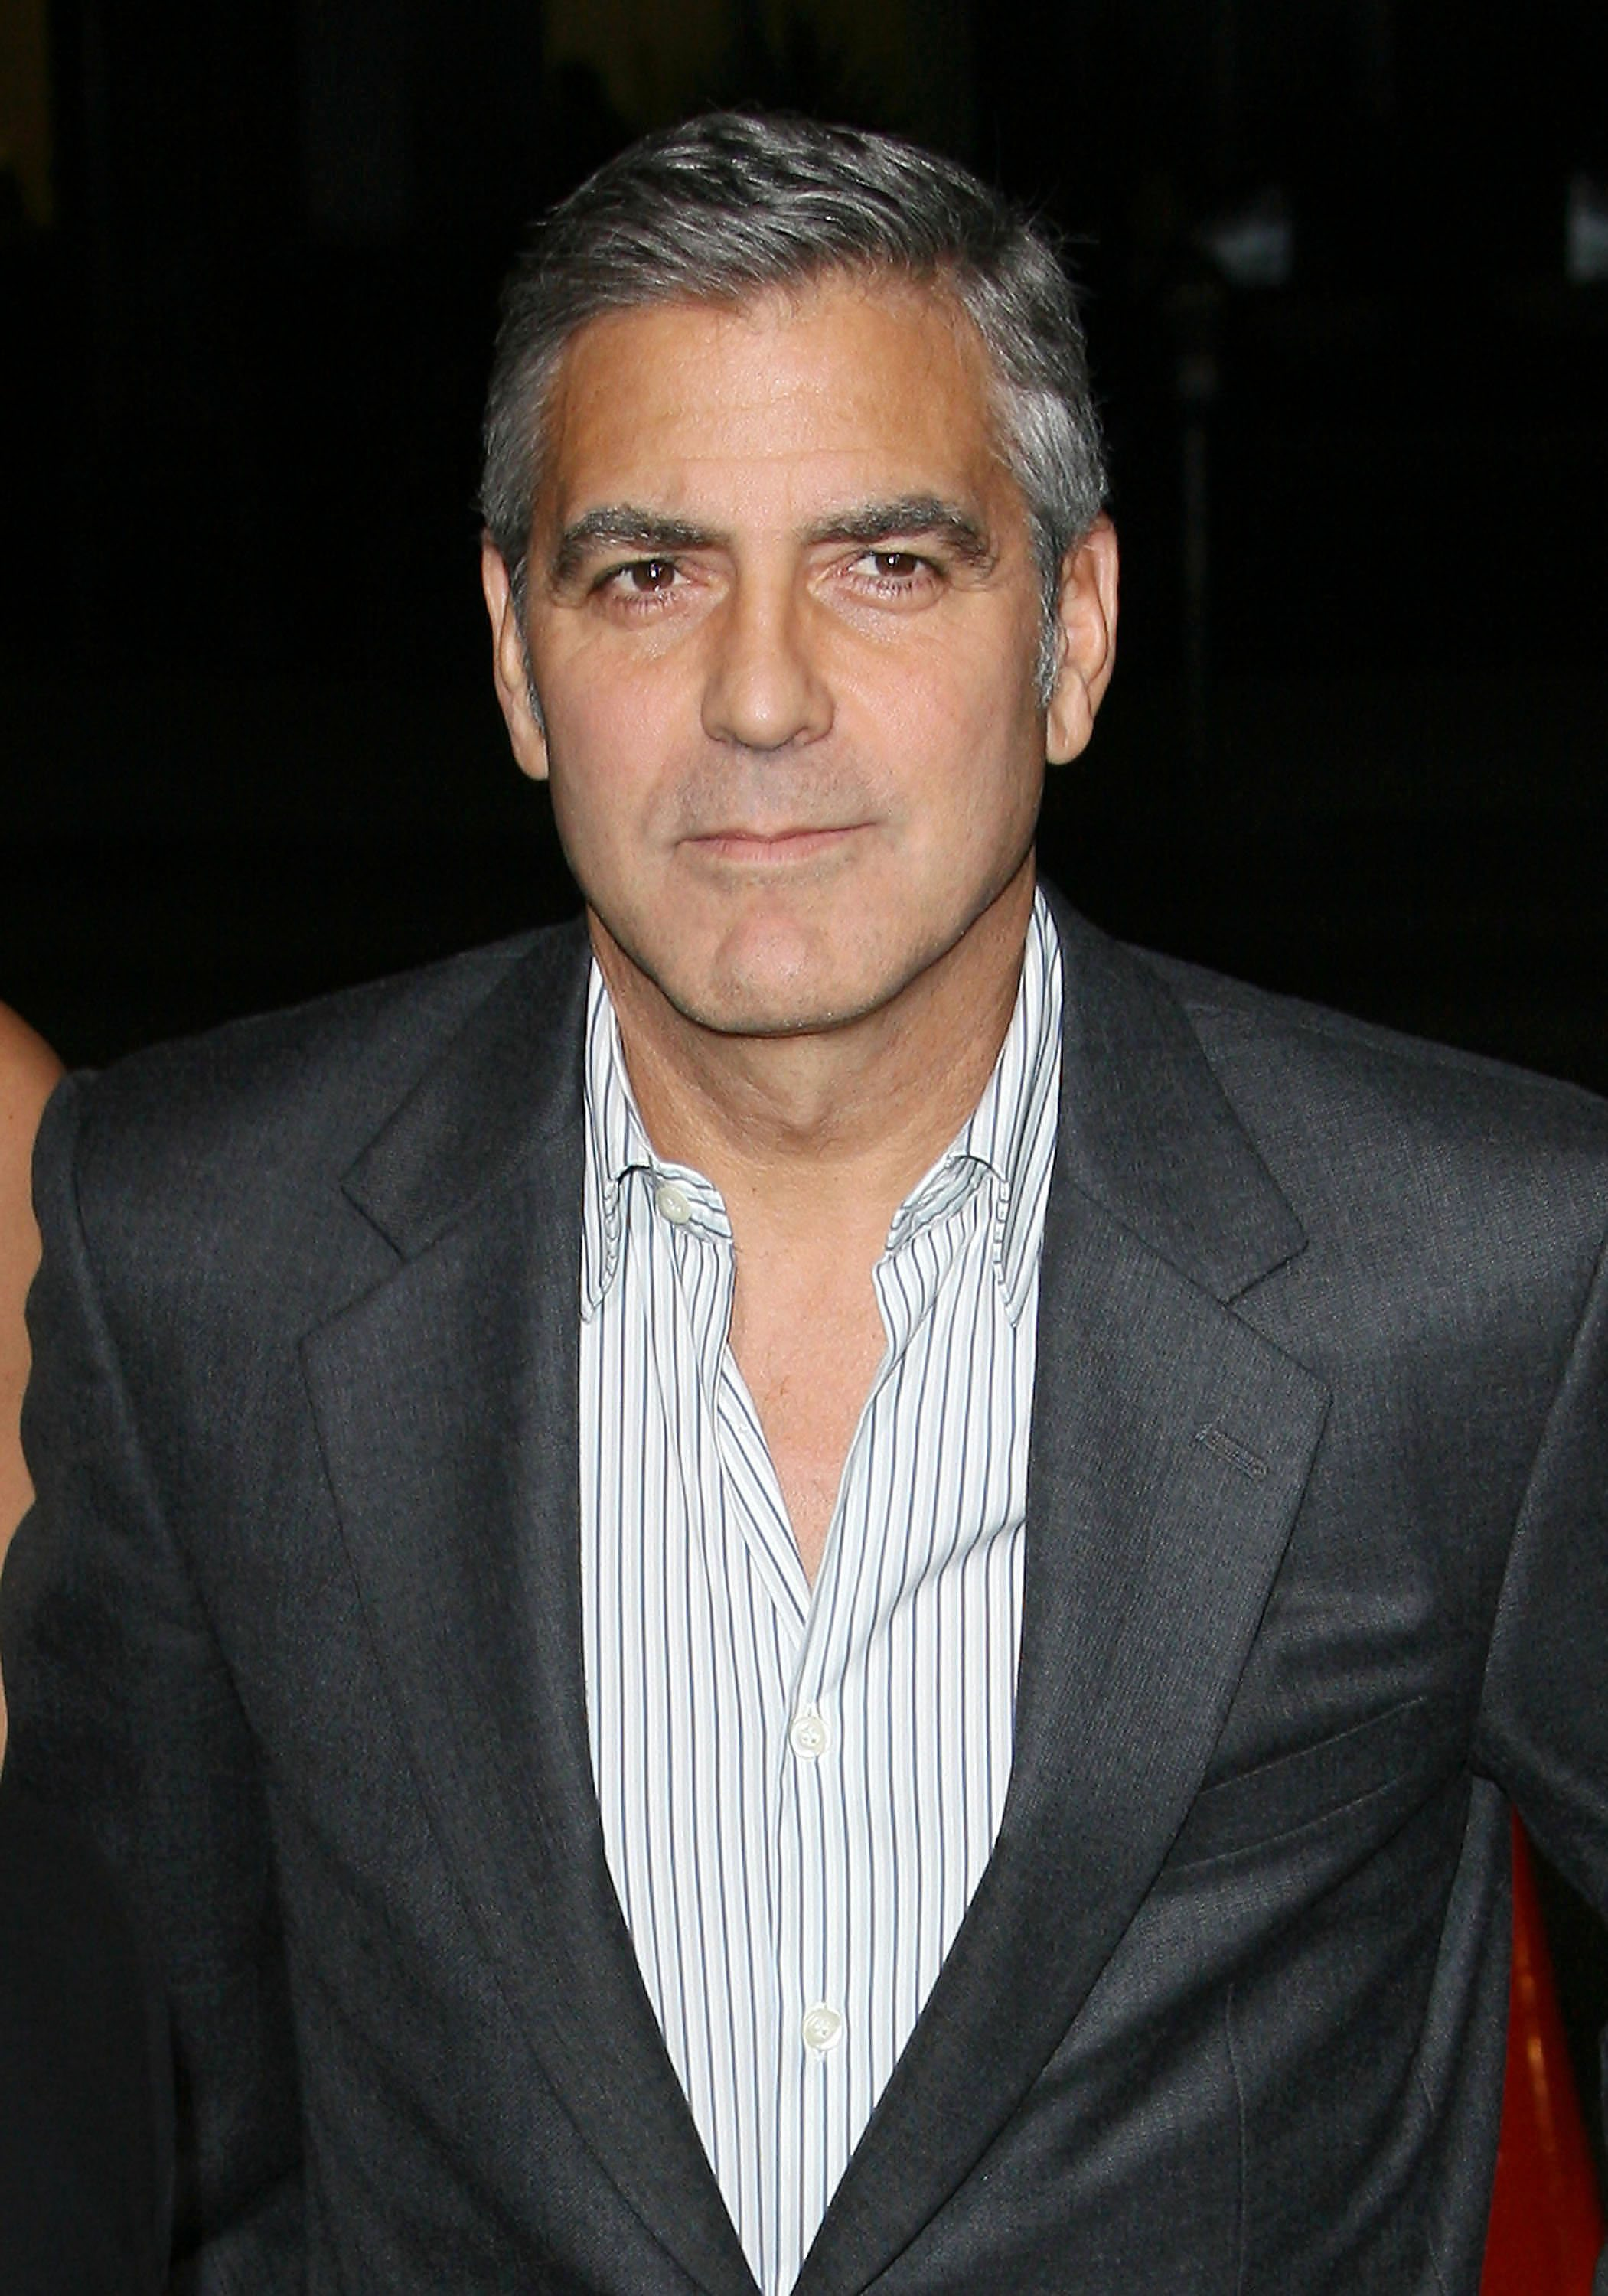 George Clooney - Images Gallery